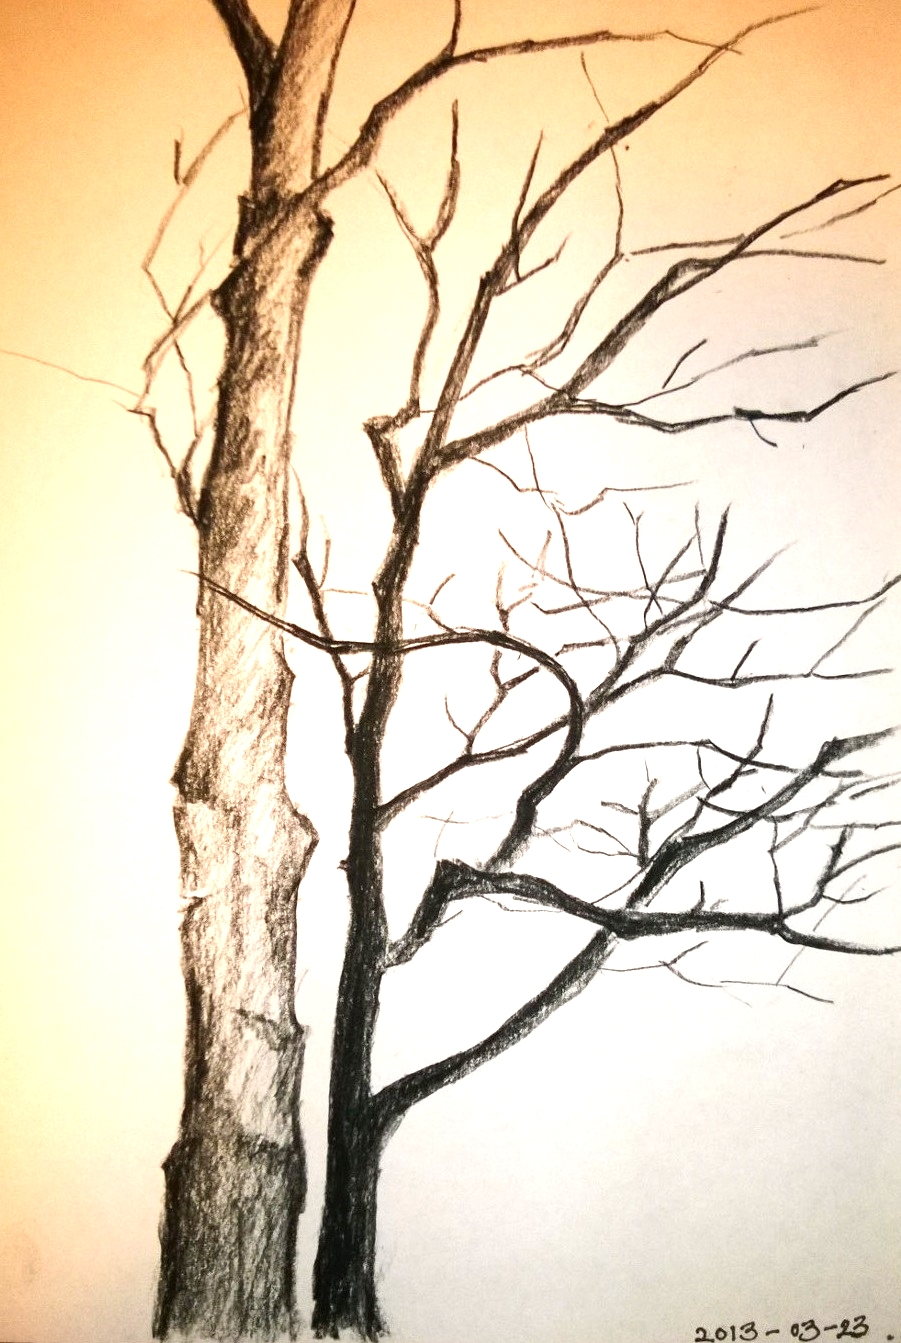 [SOLD] Pair Tree, 11.5 x 8 inches